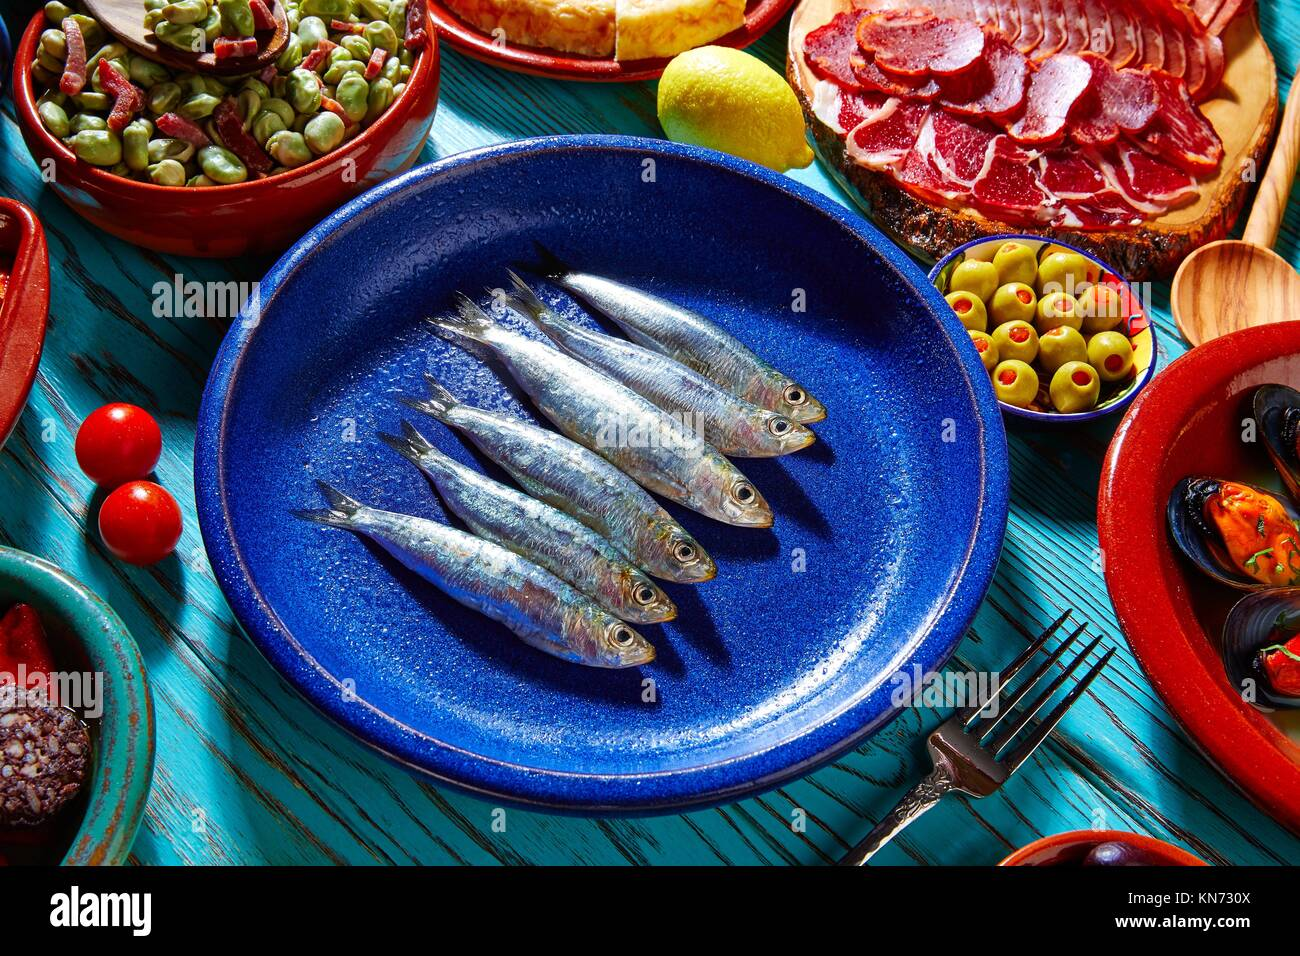 Tapas from spain sardines and mix of most popular recipes of Mediterranean. - Stock Image